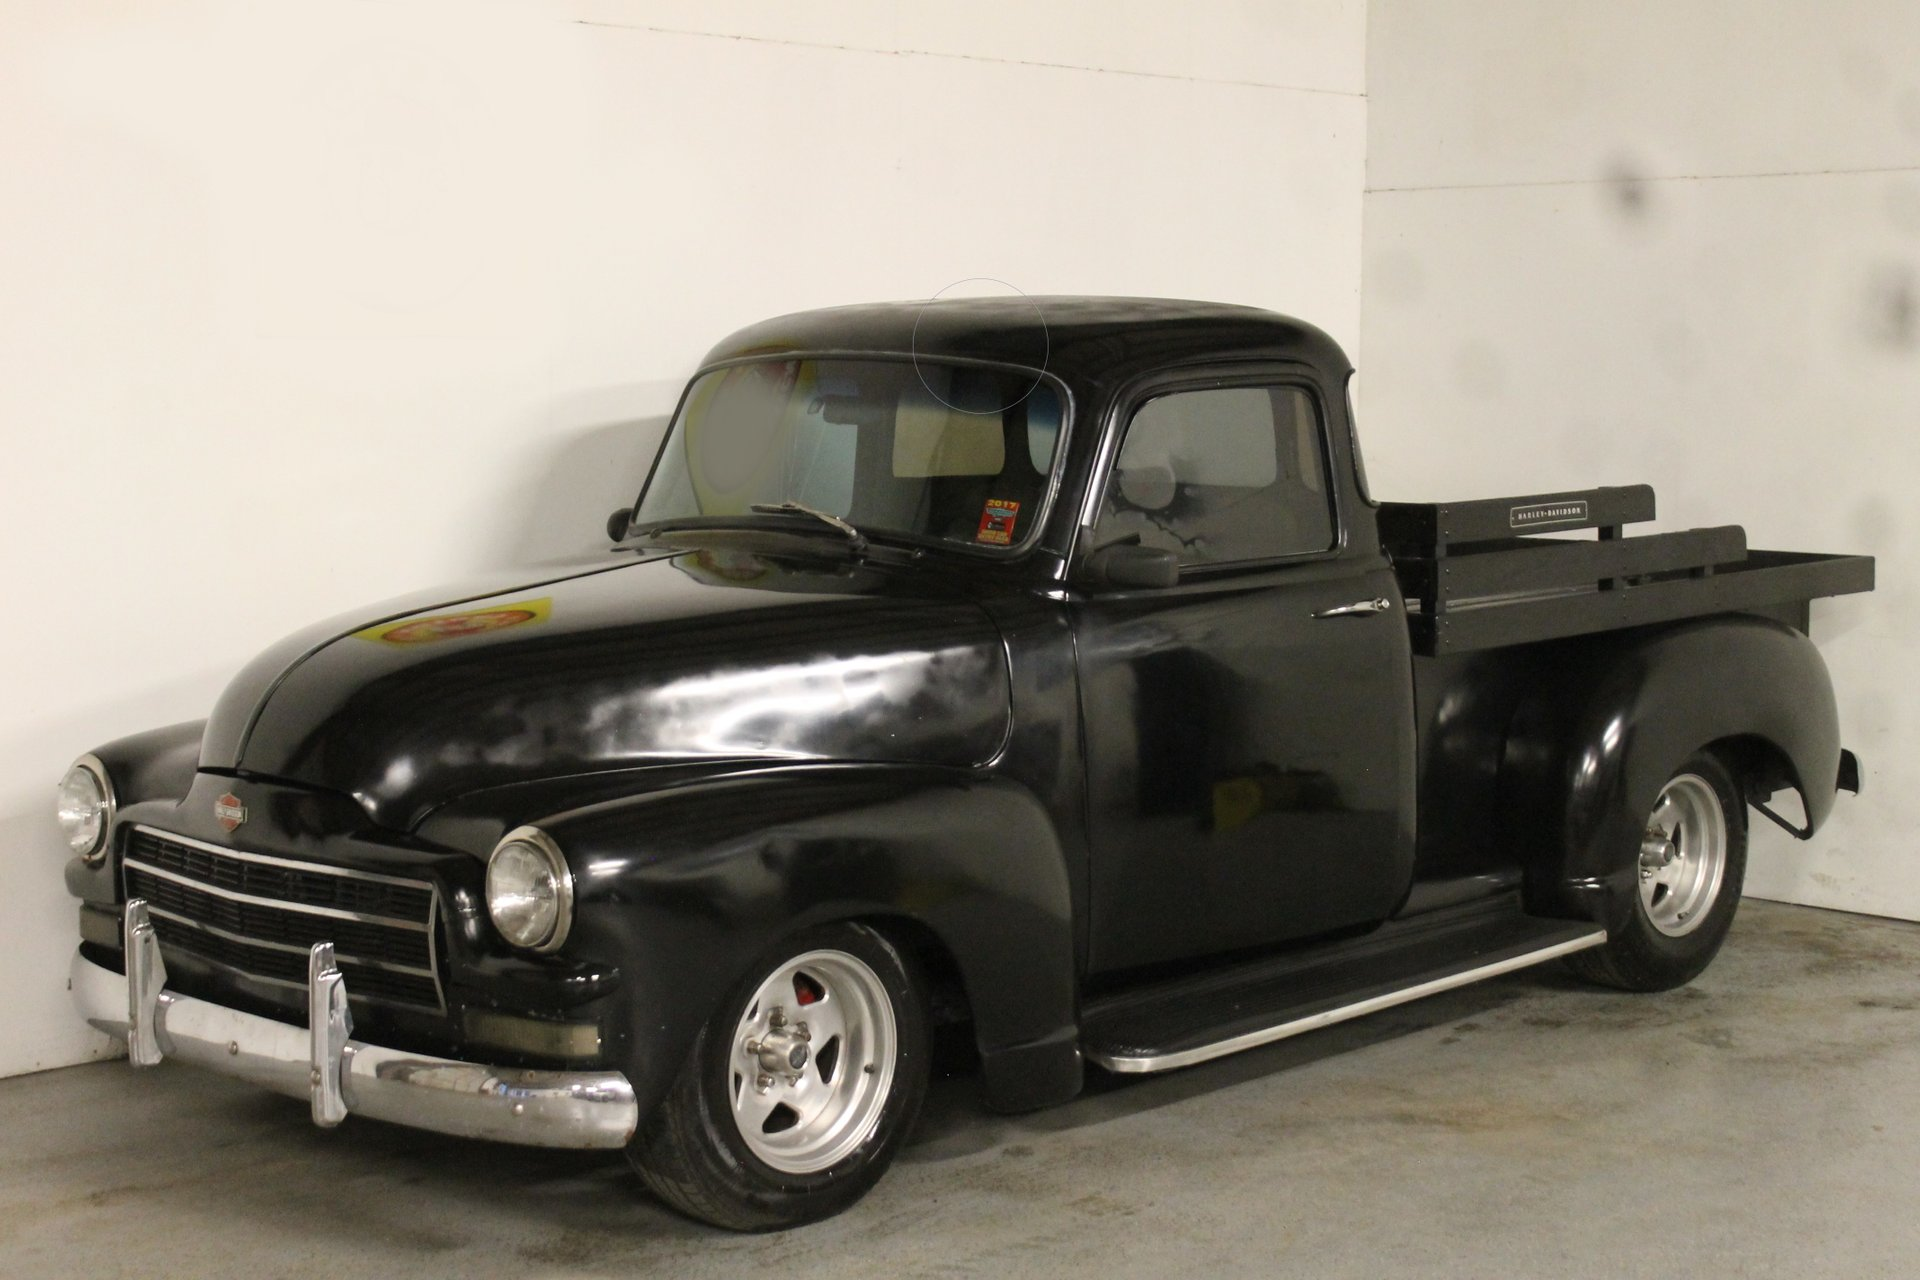 1954 Chevrolet 3100 Pickup Truck For Sale 106810 Mcg Pick Up